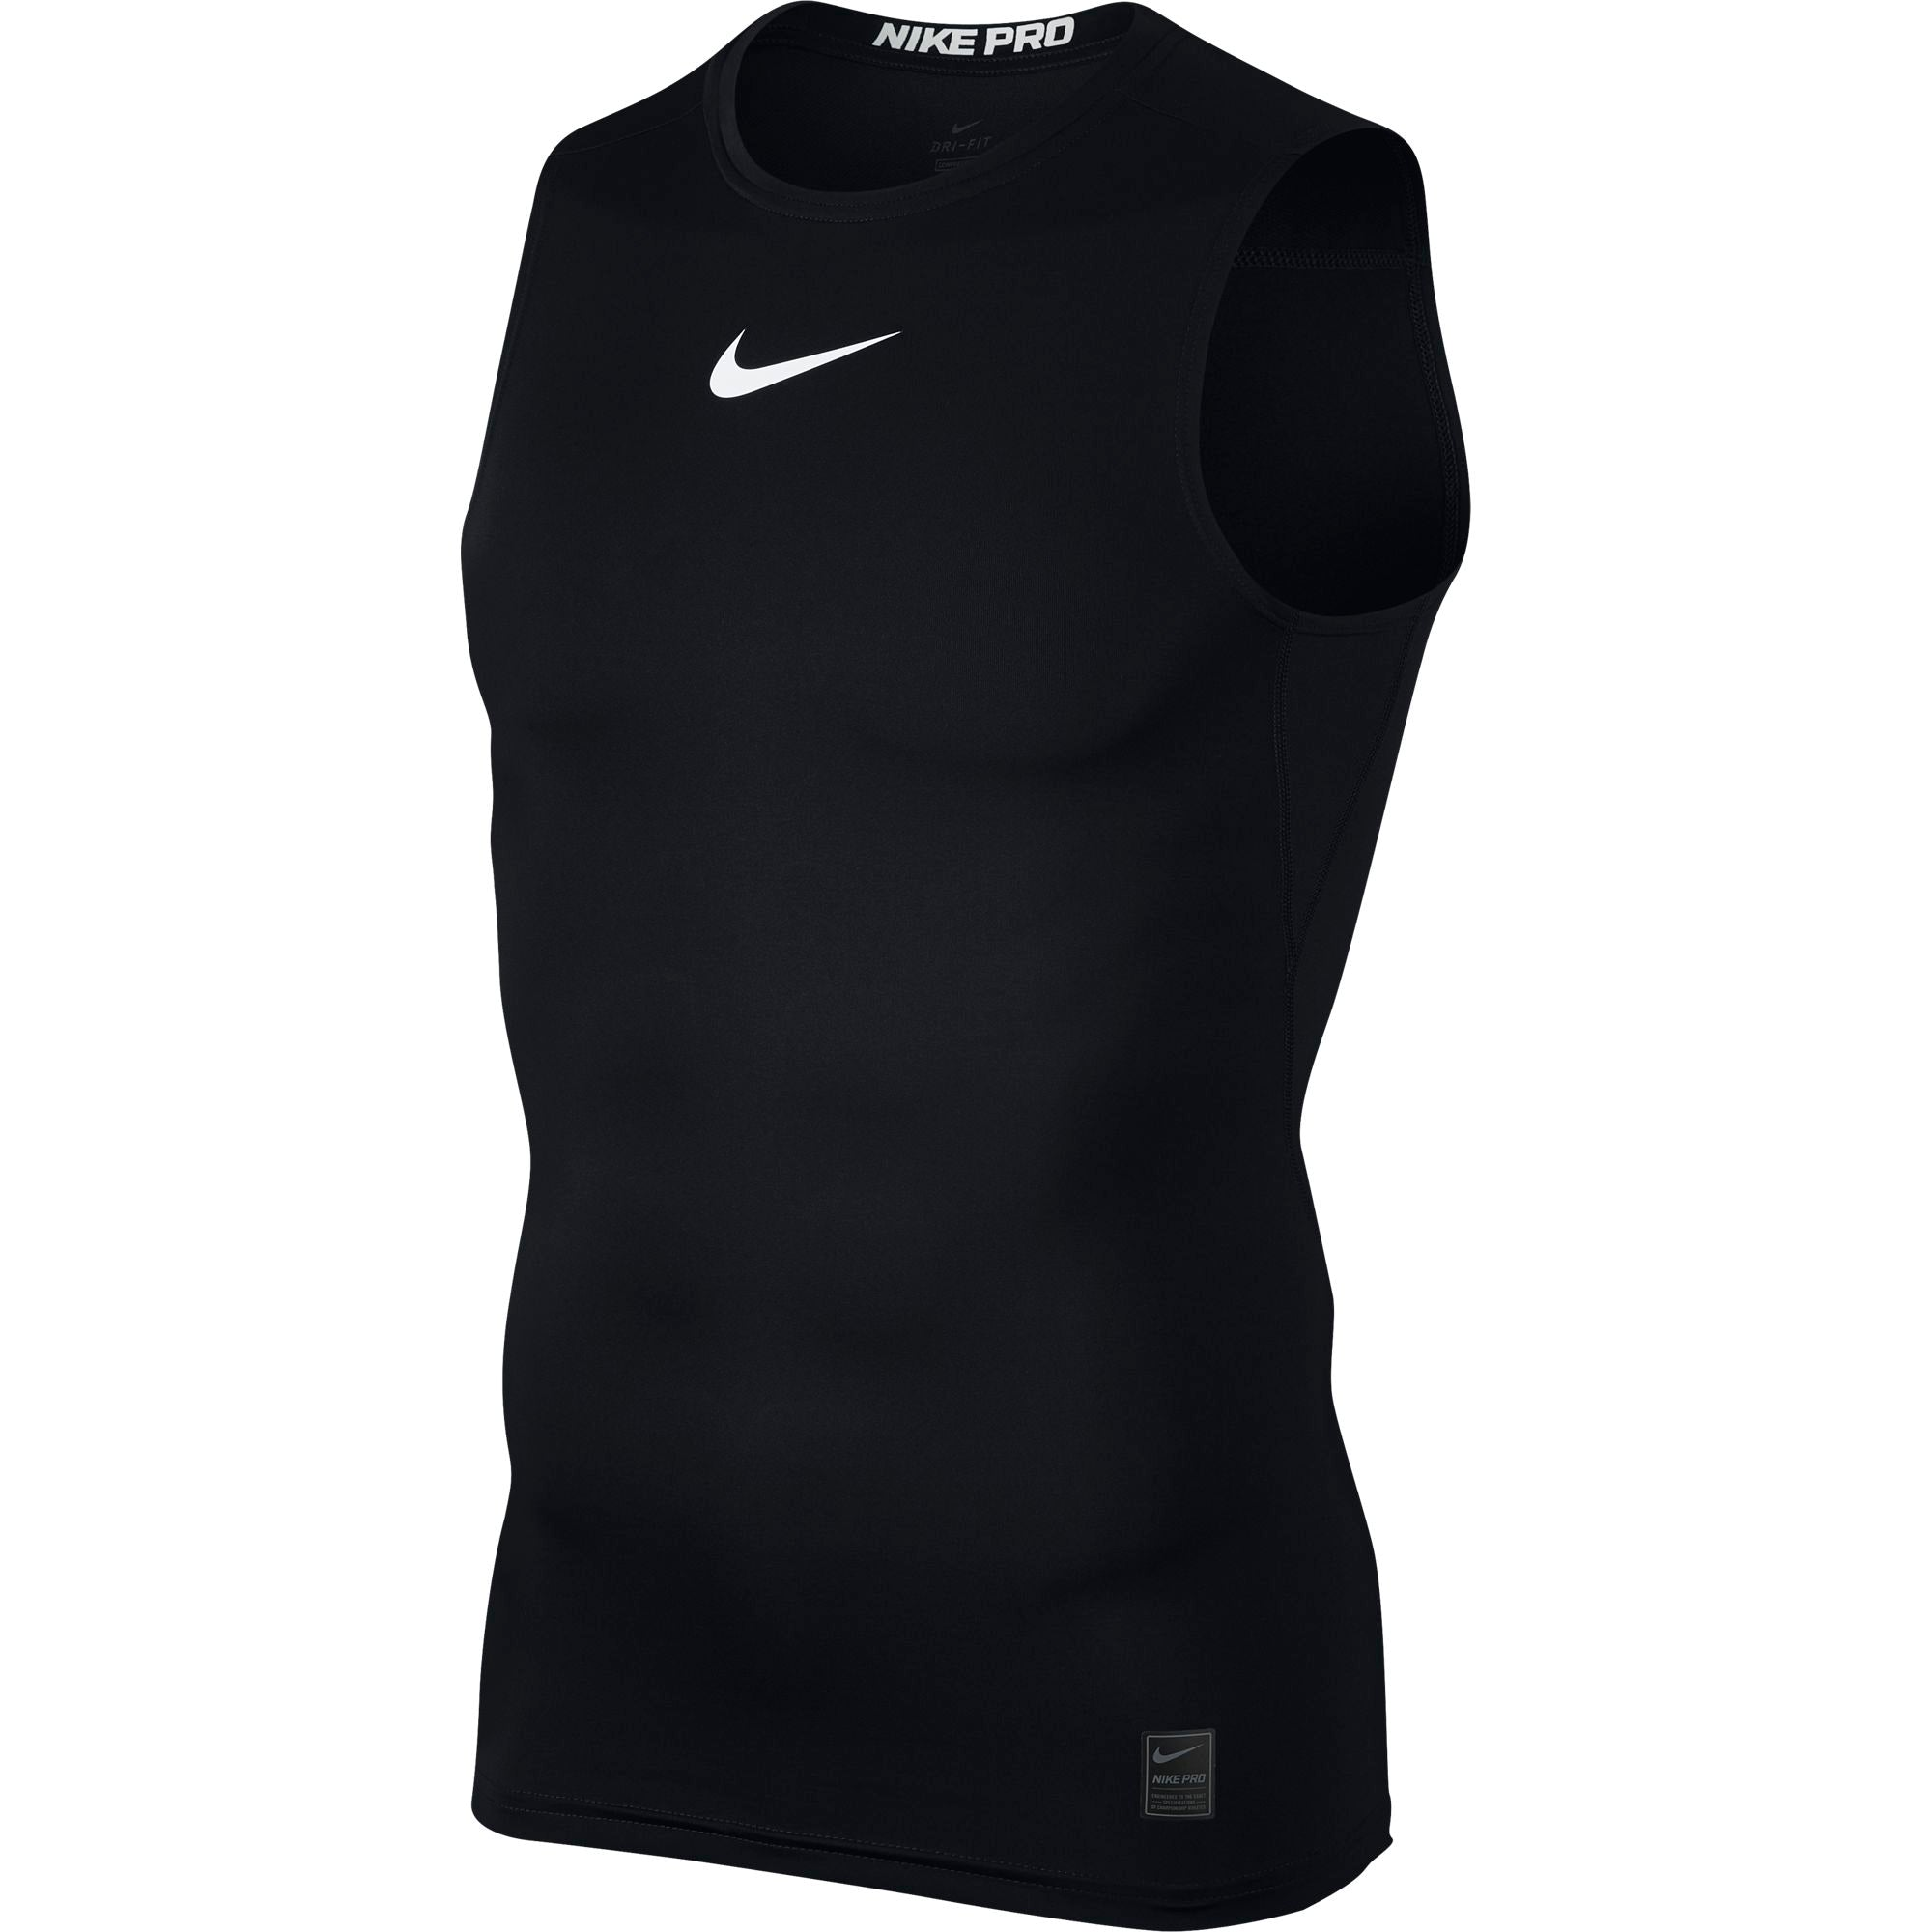 Nike Pro Base Layer Top - NK-838085-010